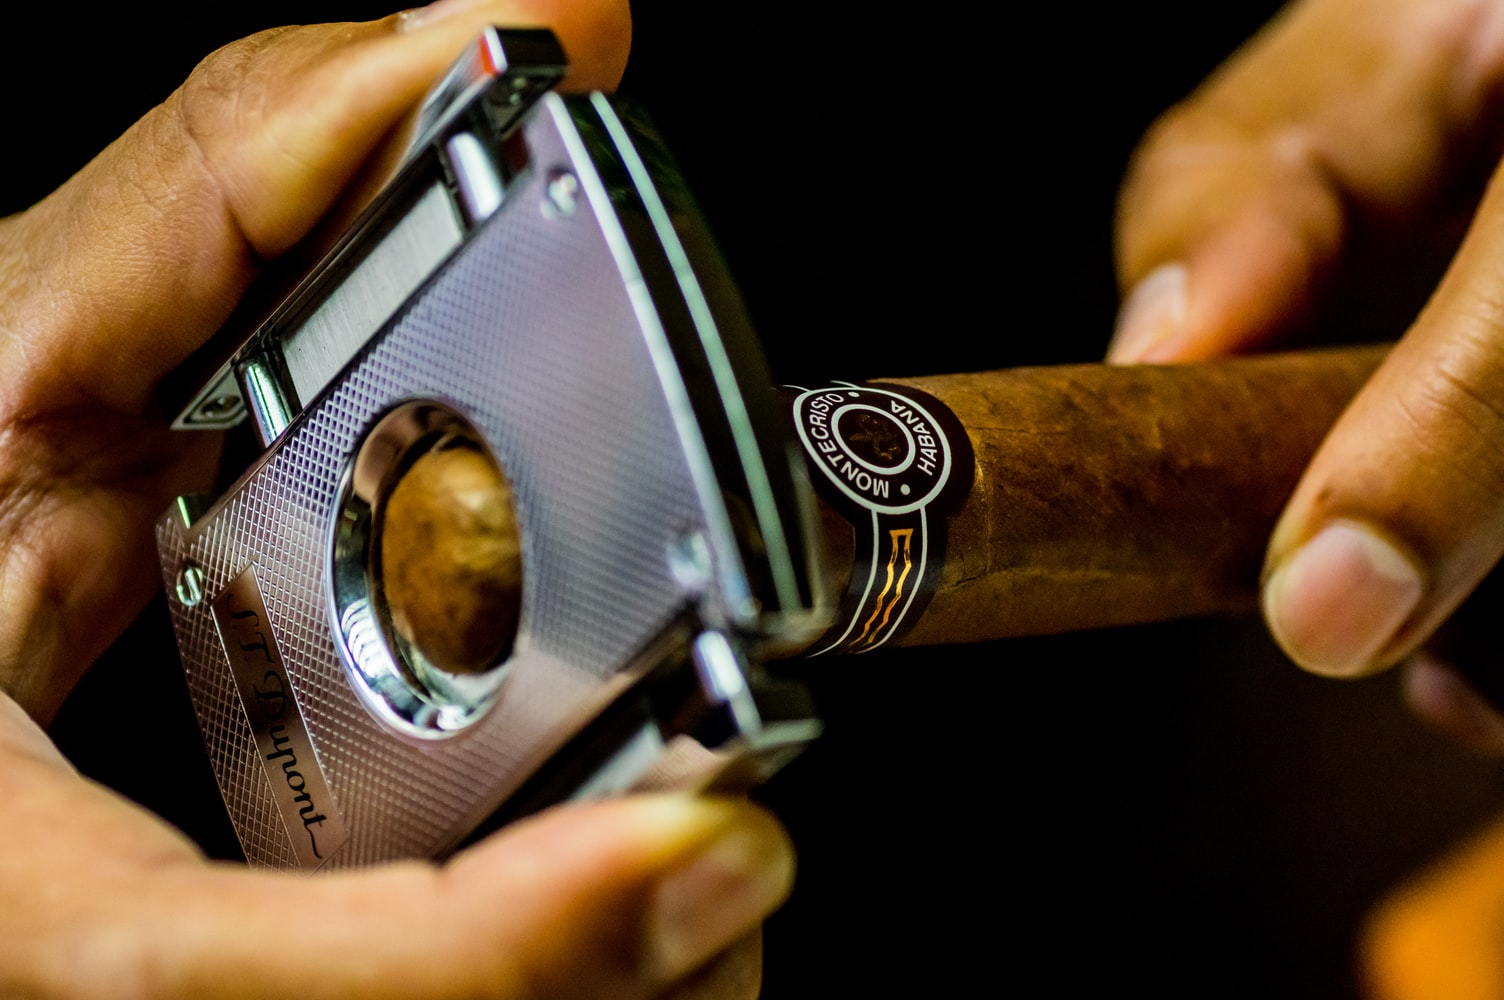 cigar cutter with cigar